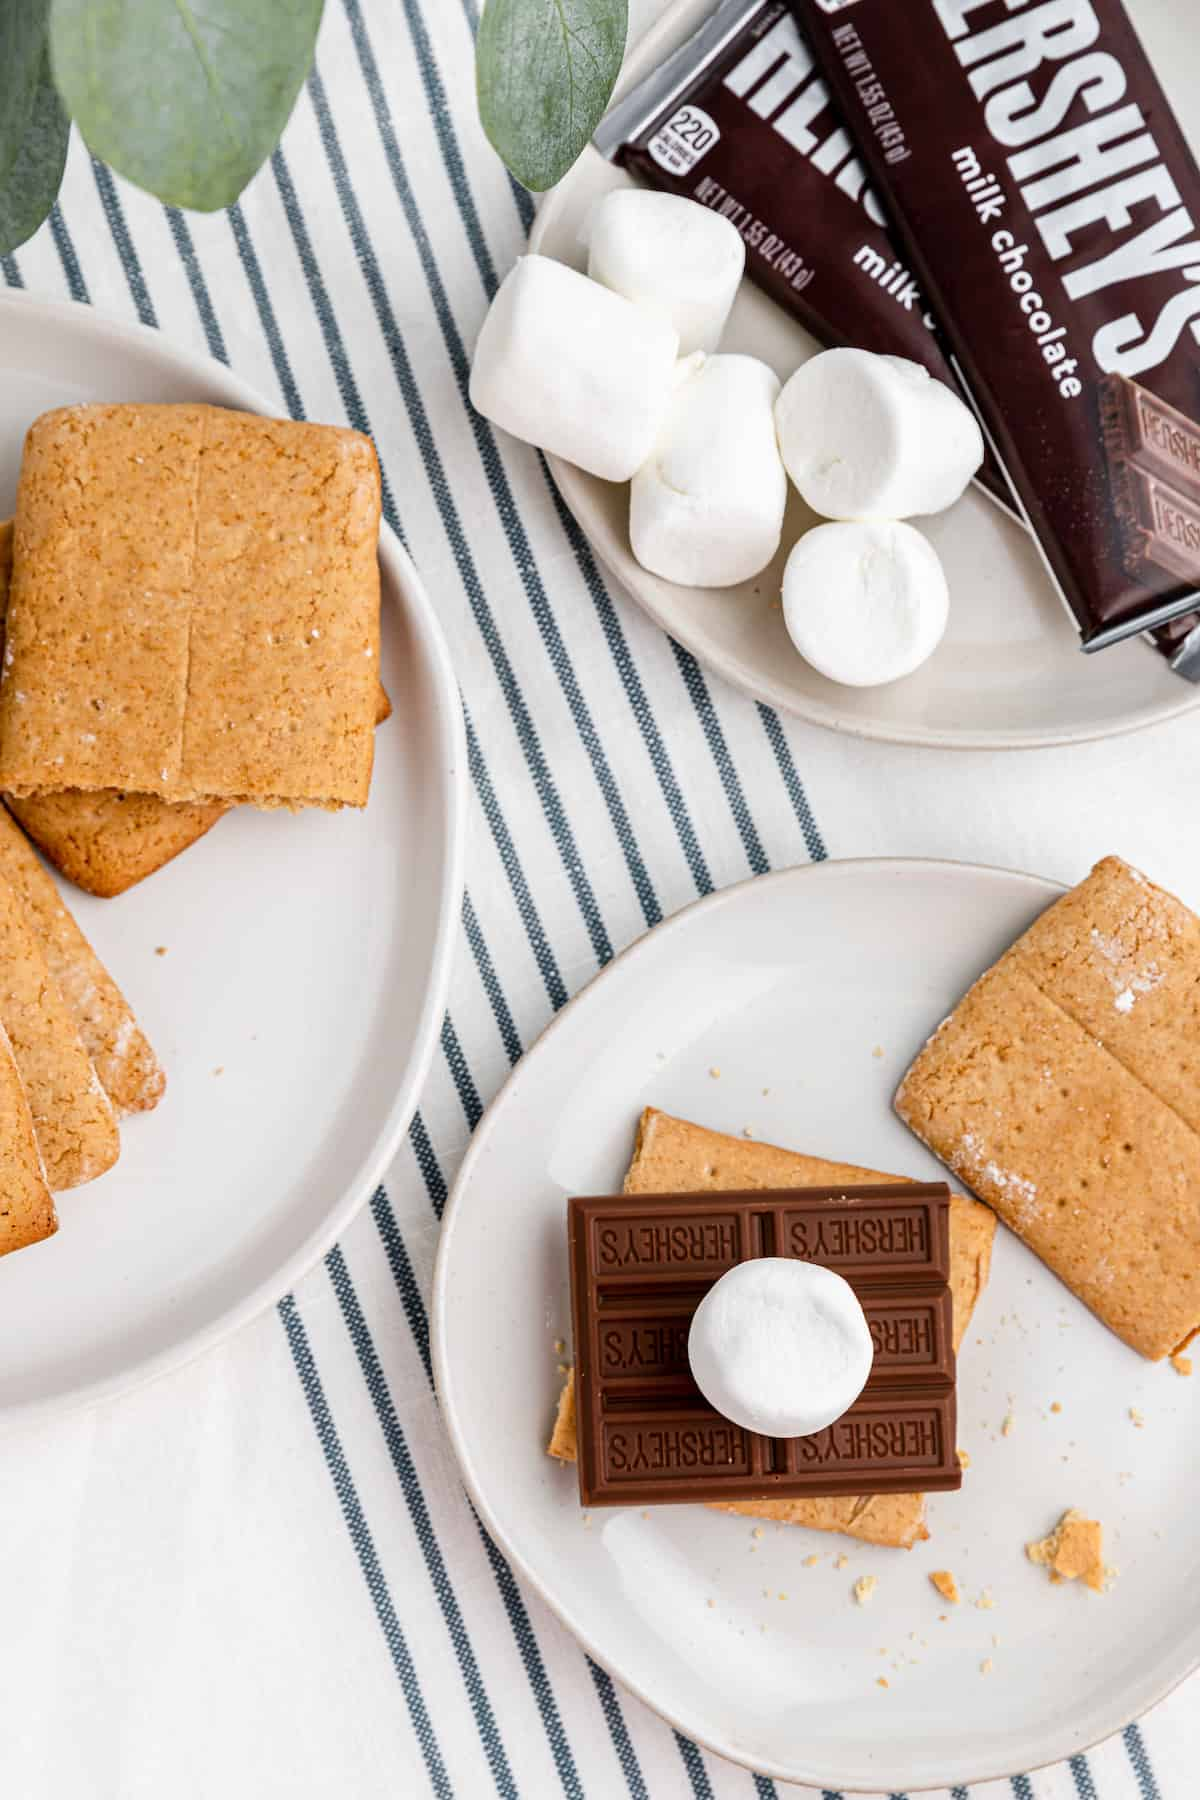 graham crackers with chocolate and marshmallows on plates